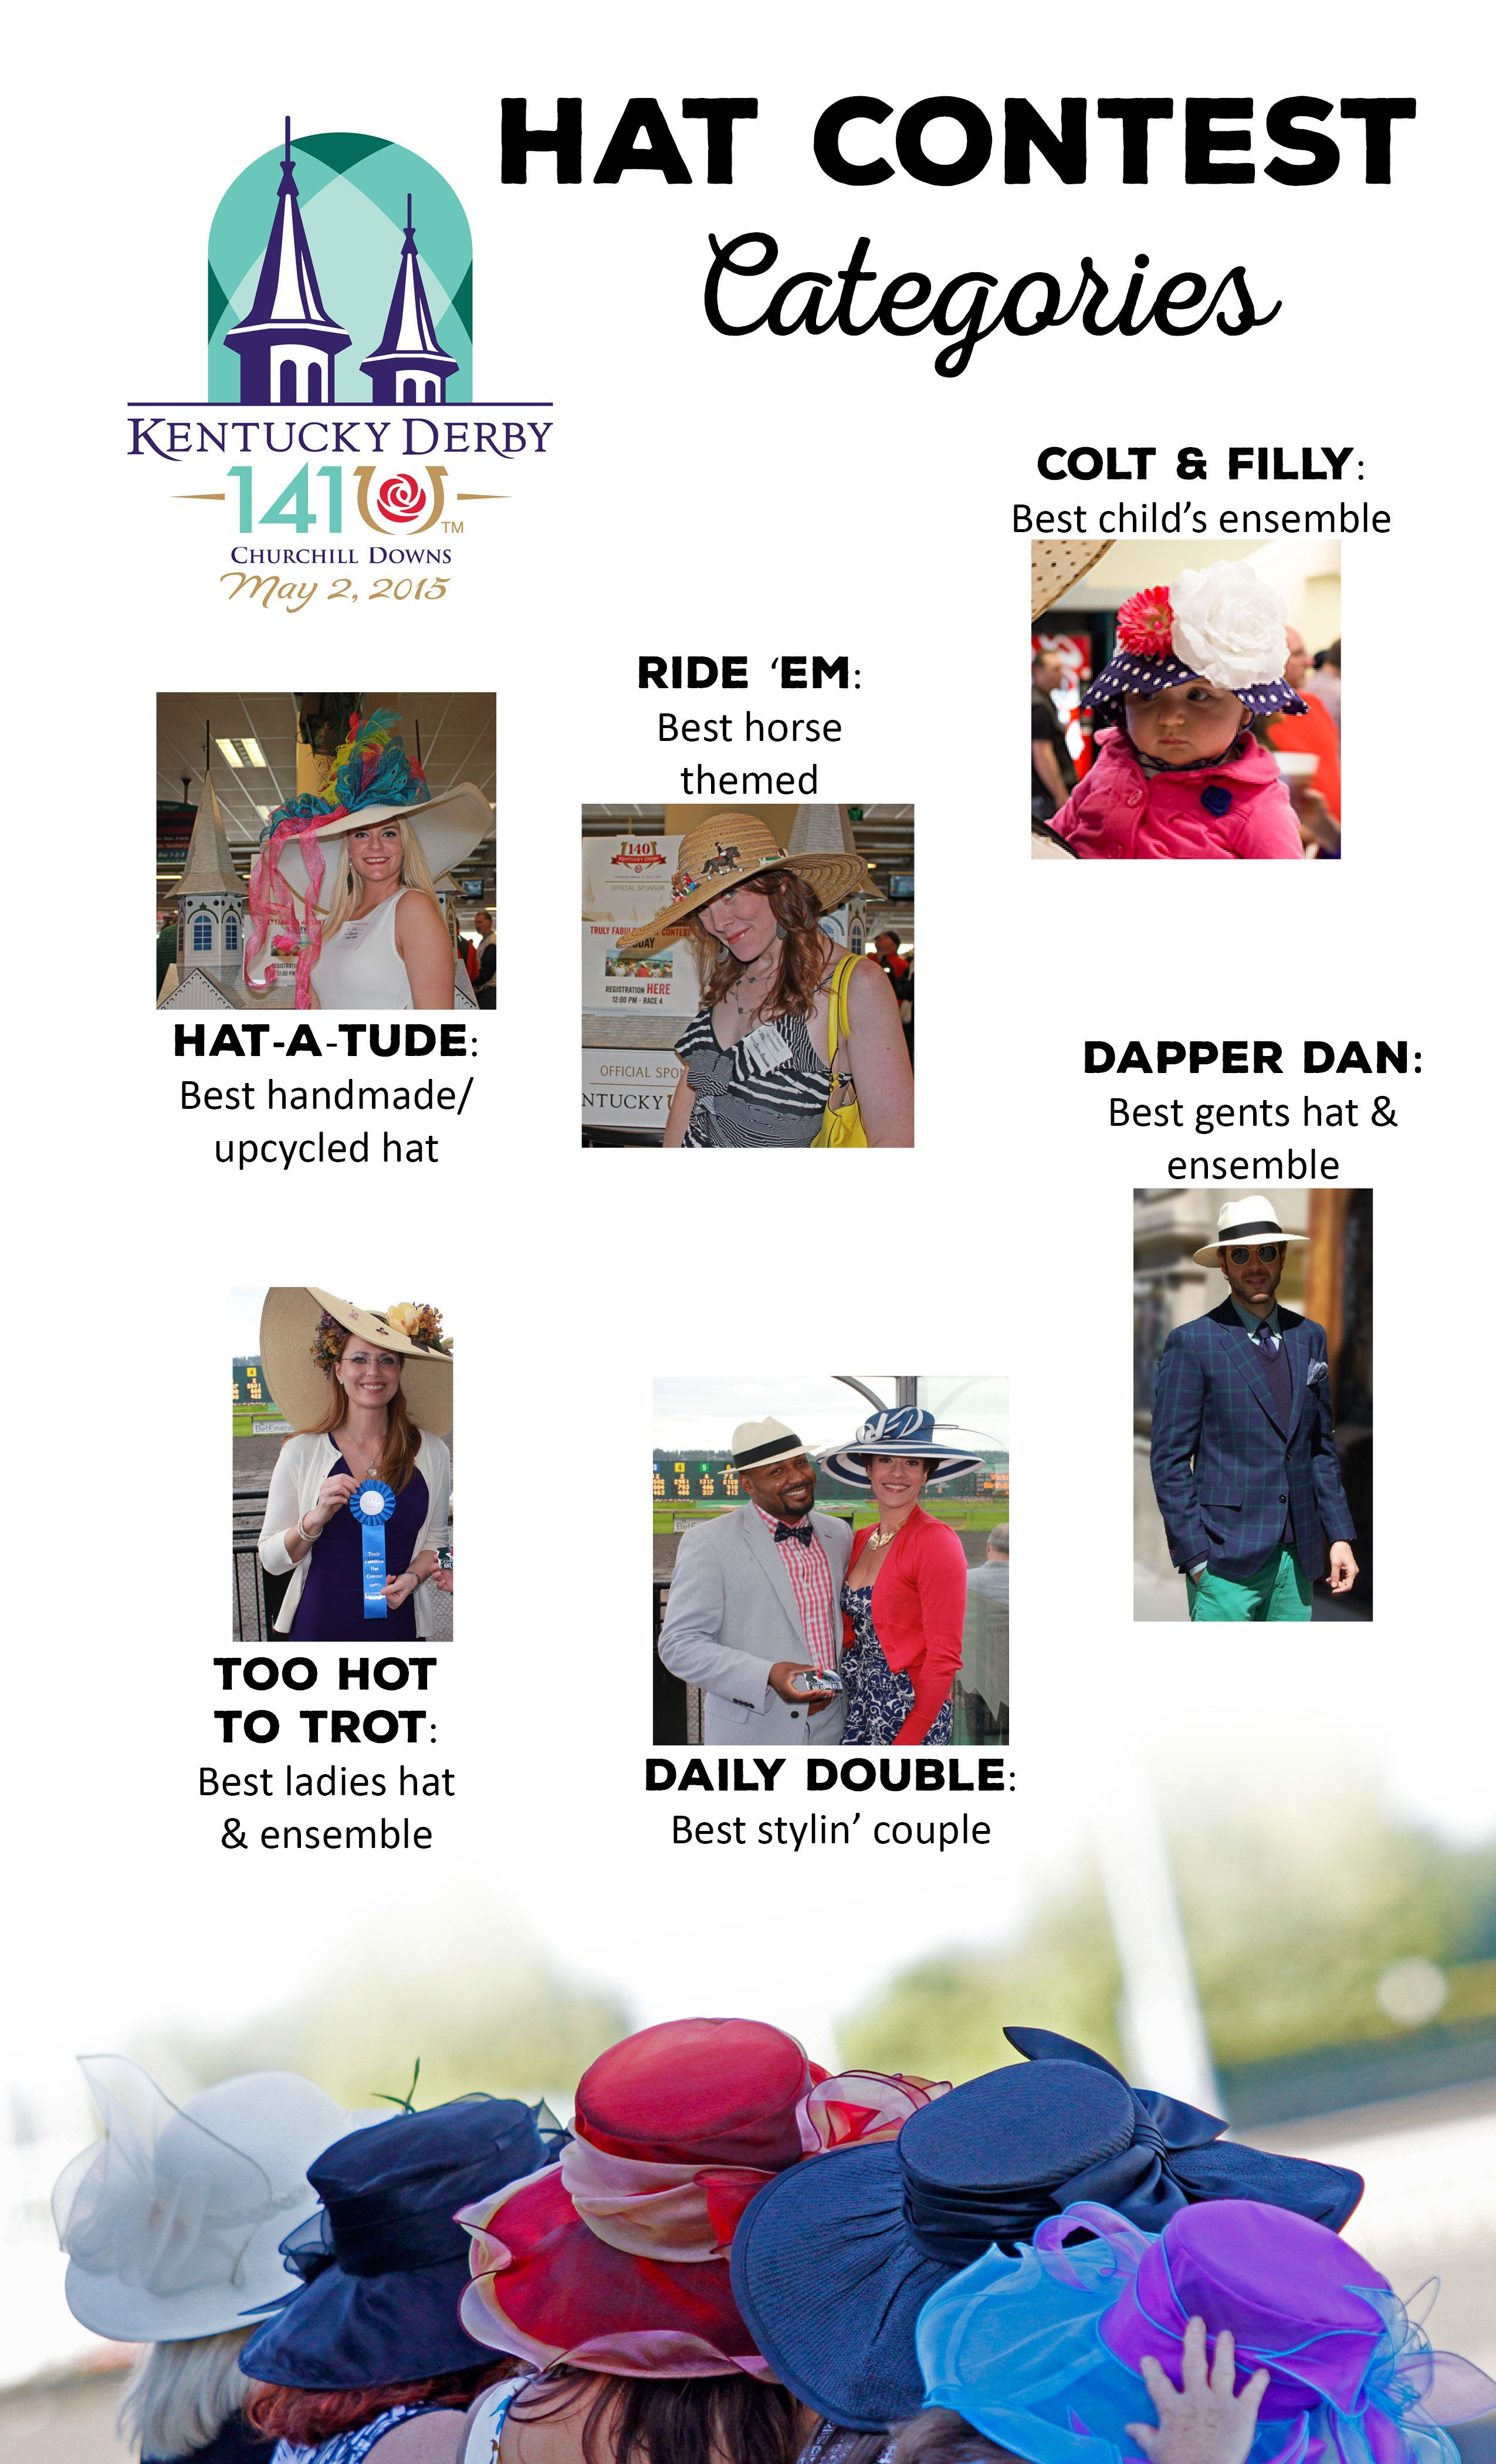 Hat contest categories for 2015! Hat-A-Tude: Best handmade